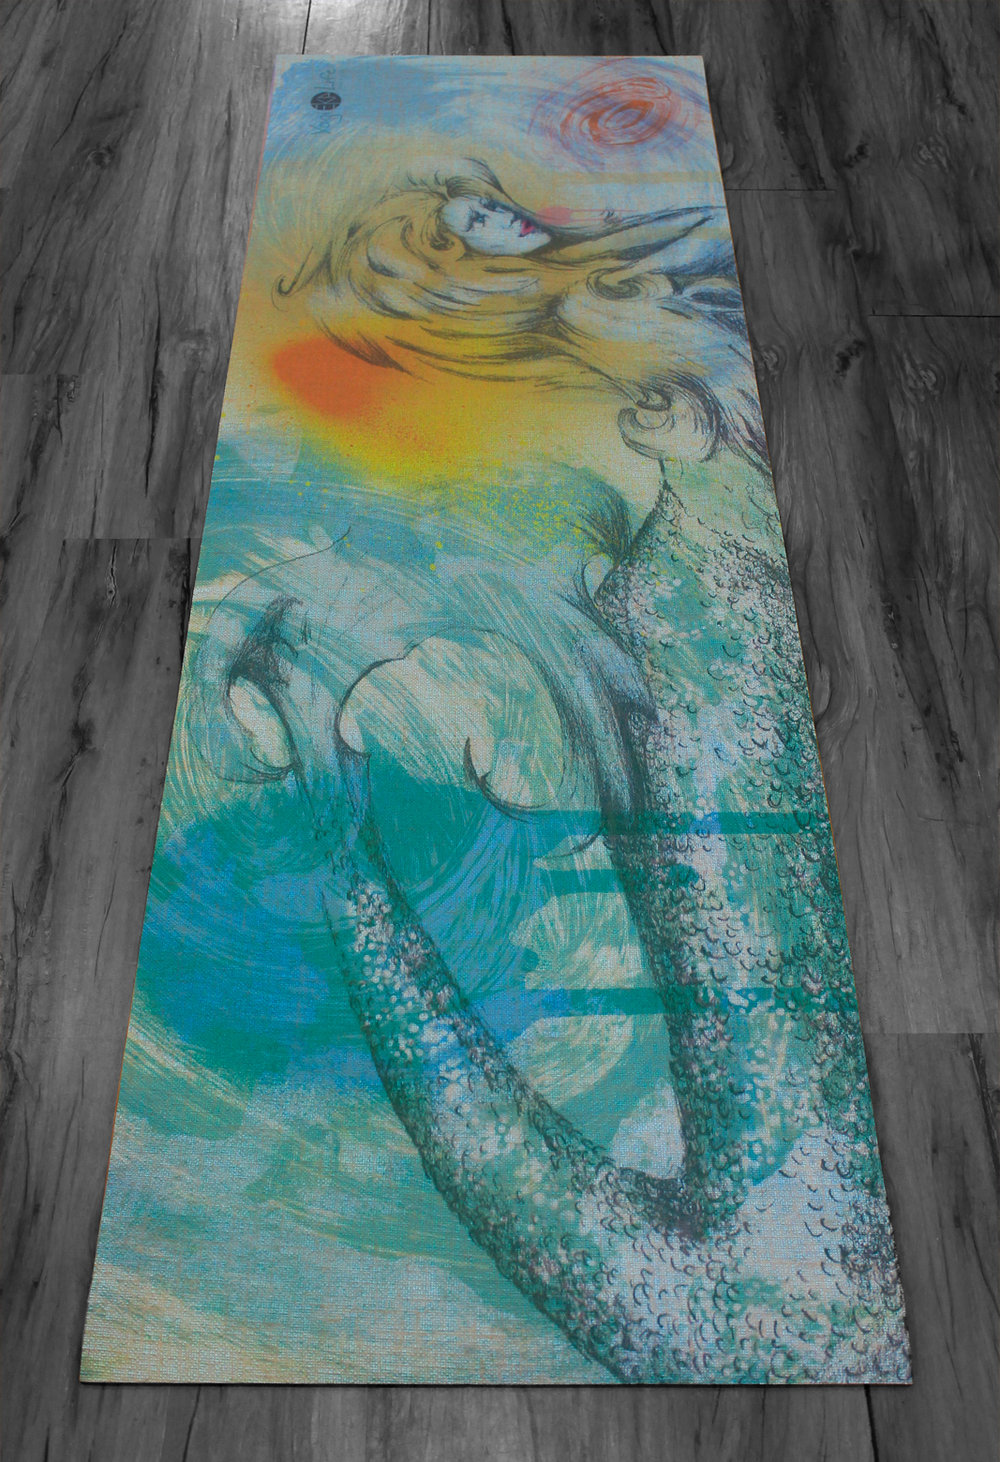 Salt & Fire Design on EkoYogi Mat Aqua